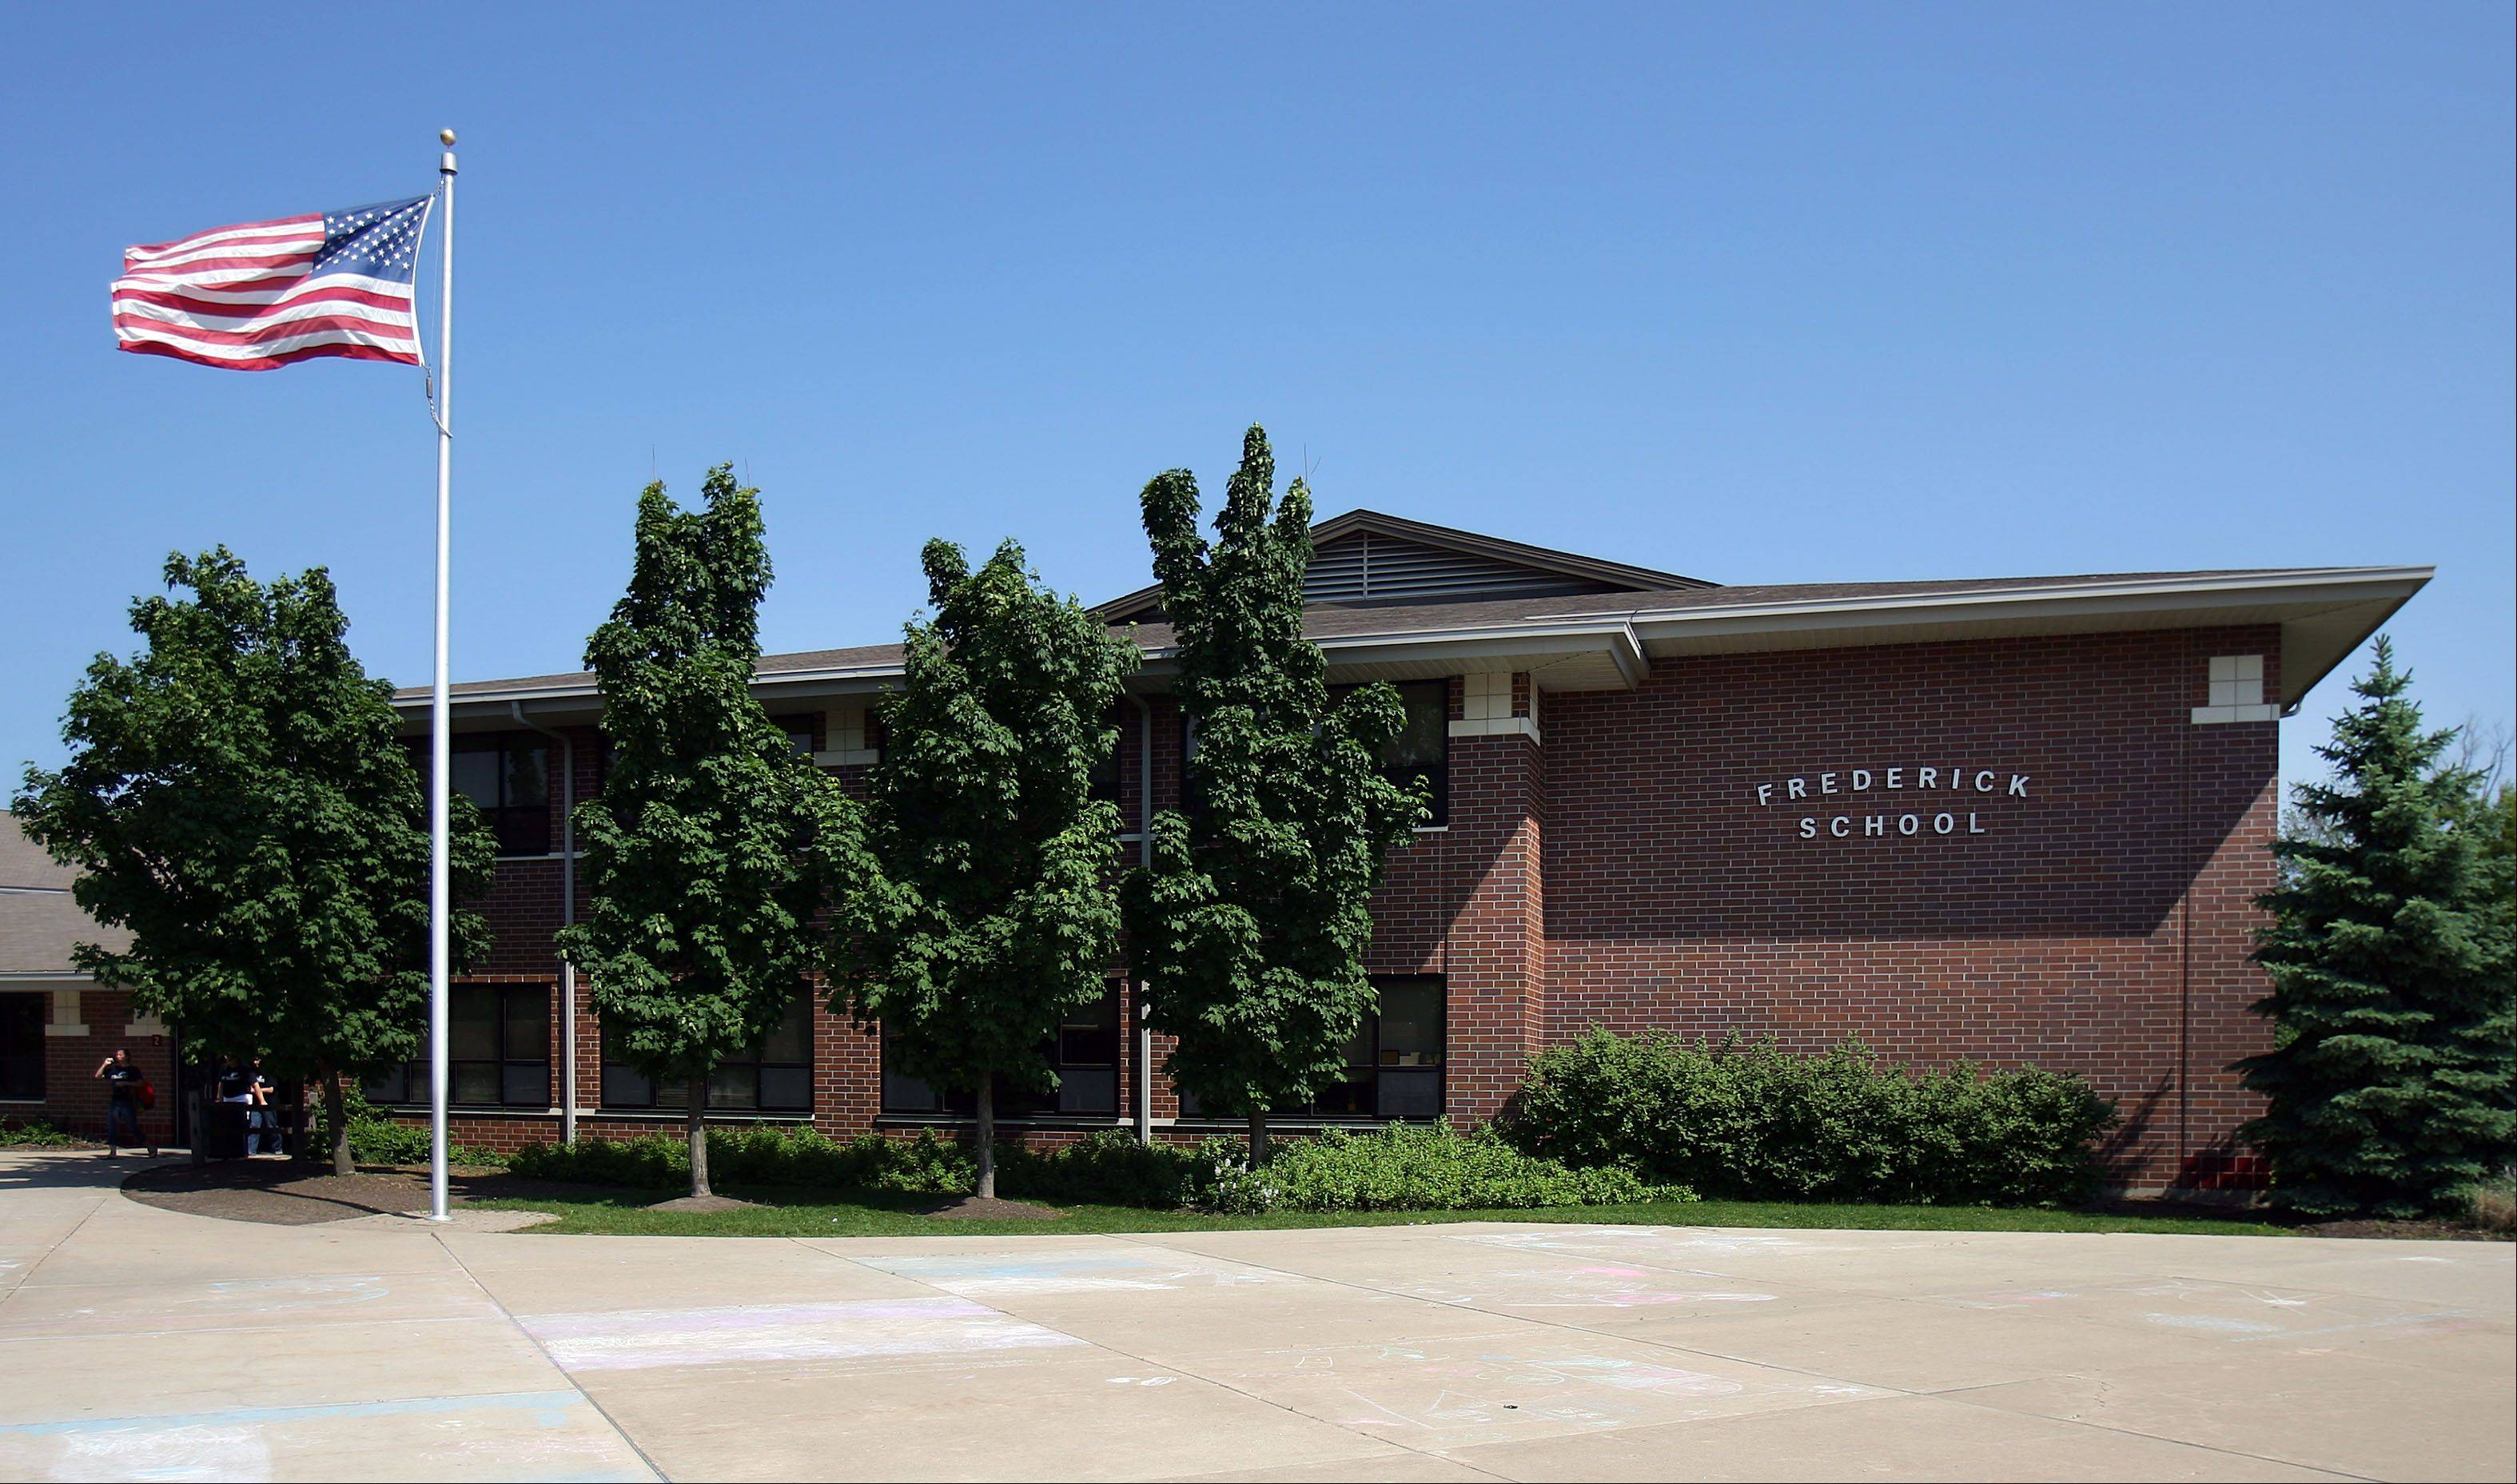 Frederick School is part of Grayslake Elementary District 46. School board members have agreed to raise next year's tax levy.